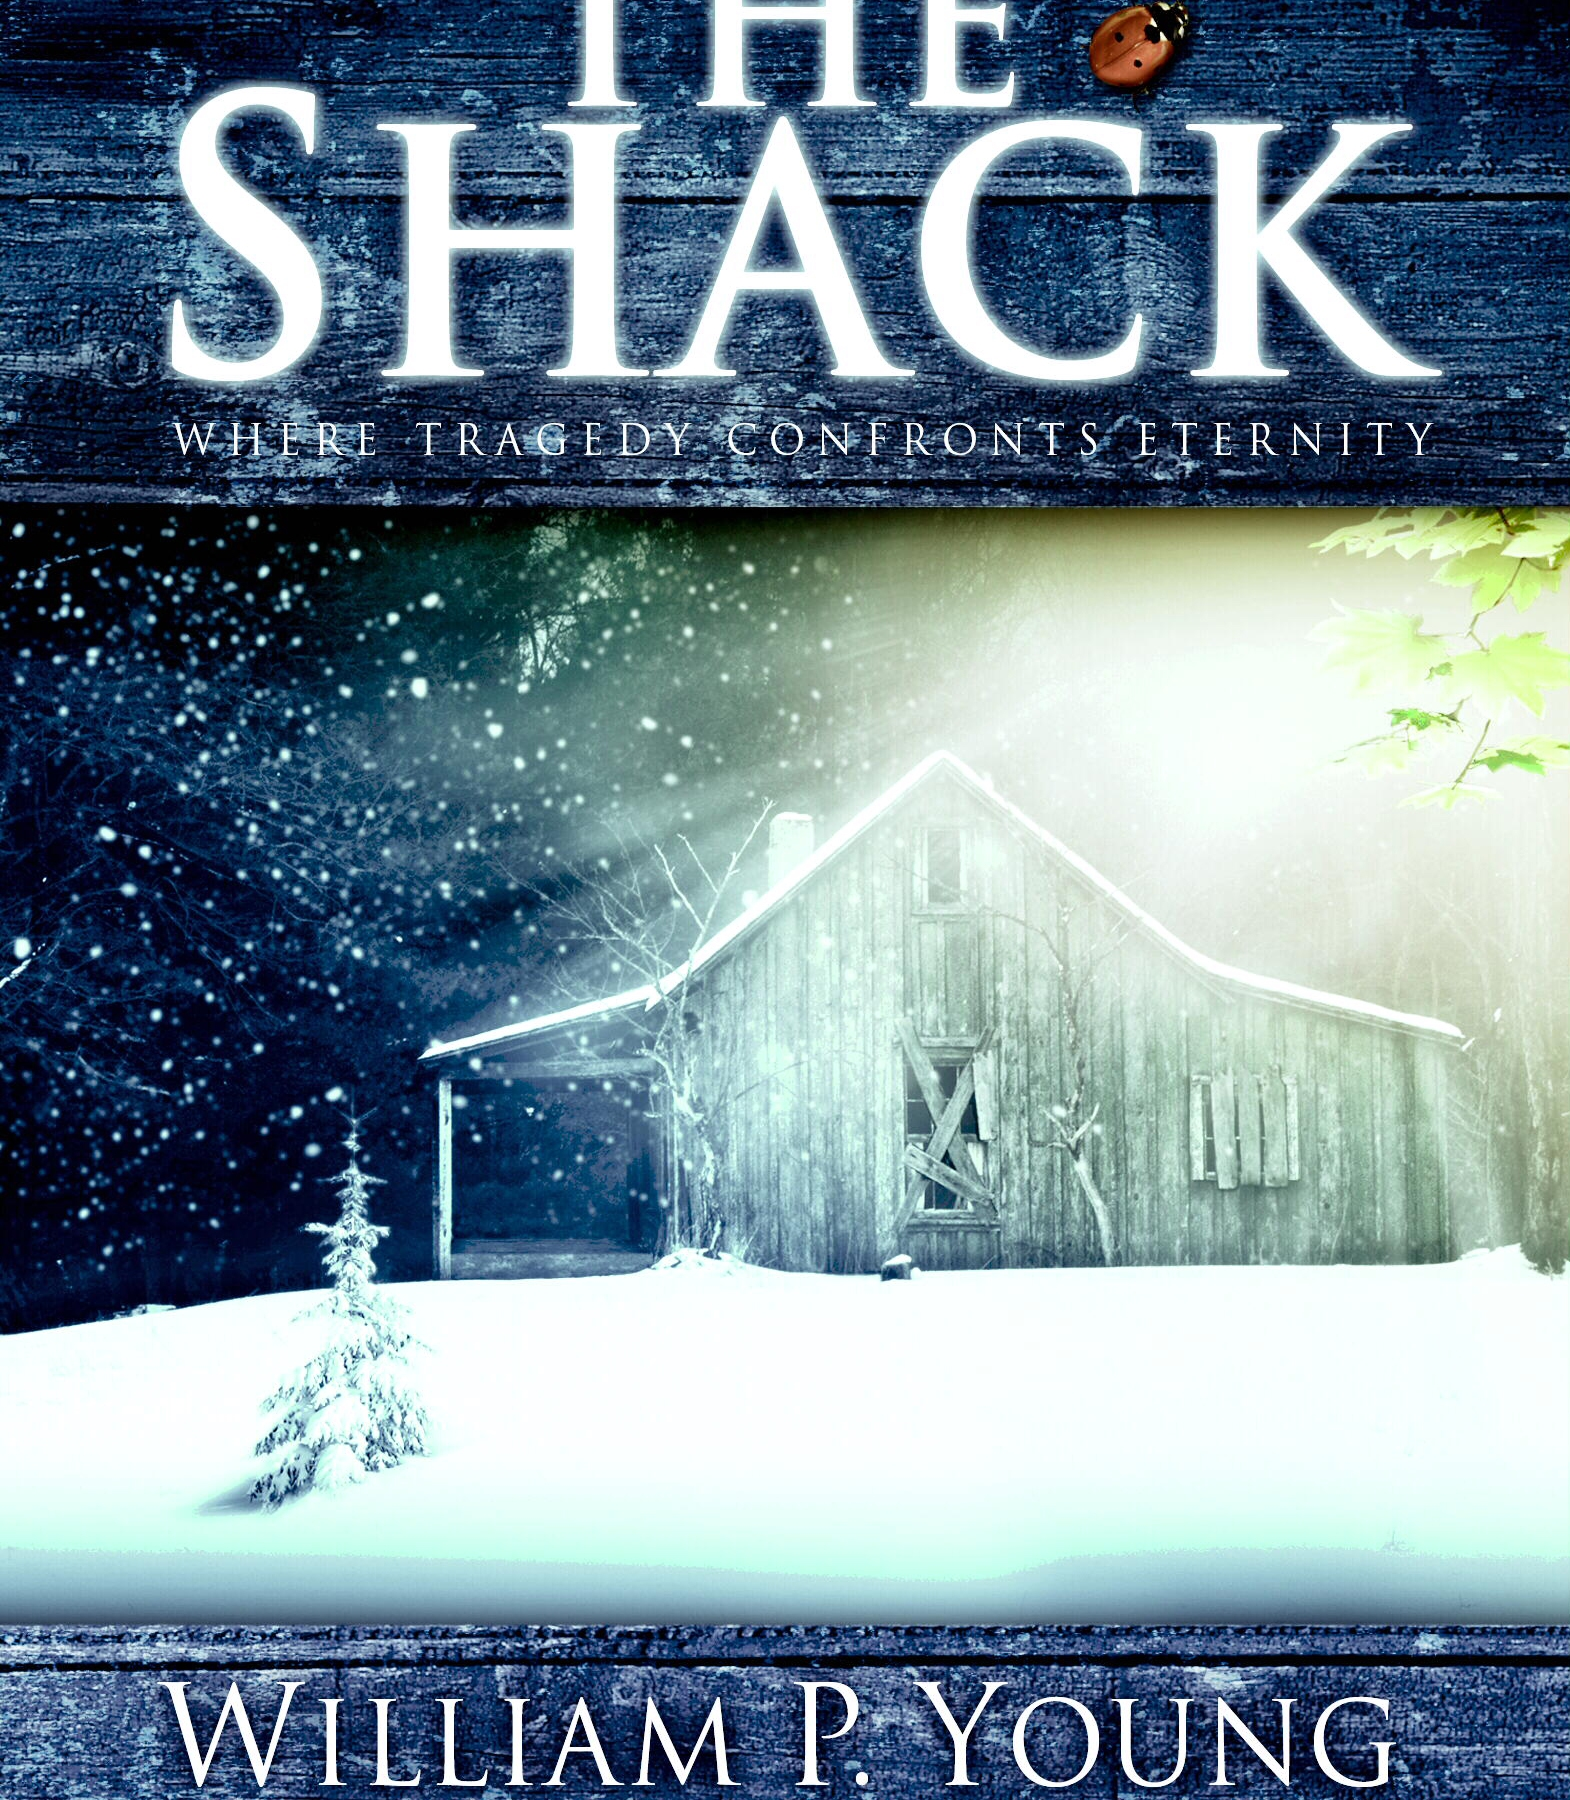 Book cover of 'The Shack' by William Paul Young